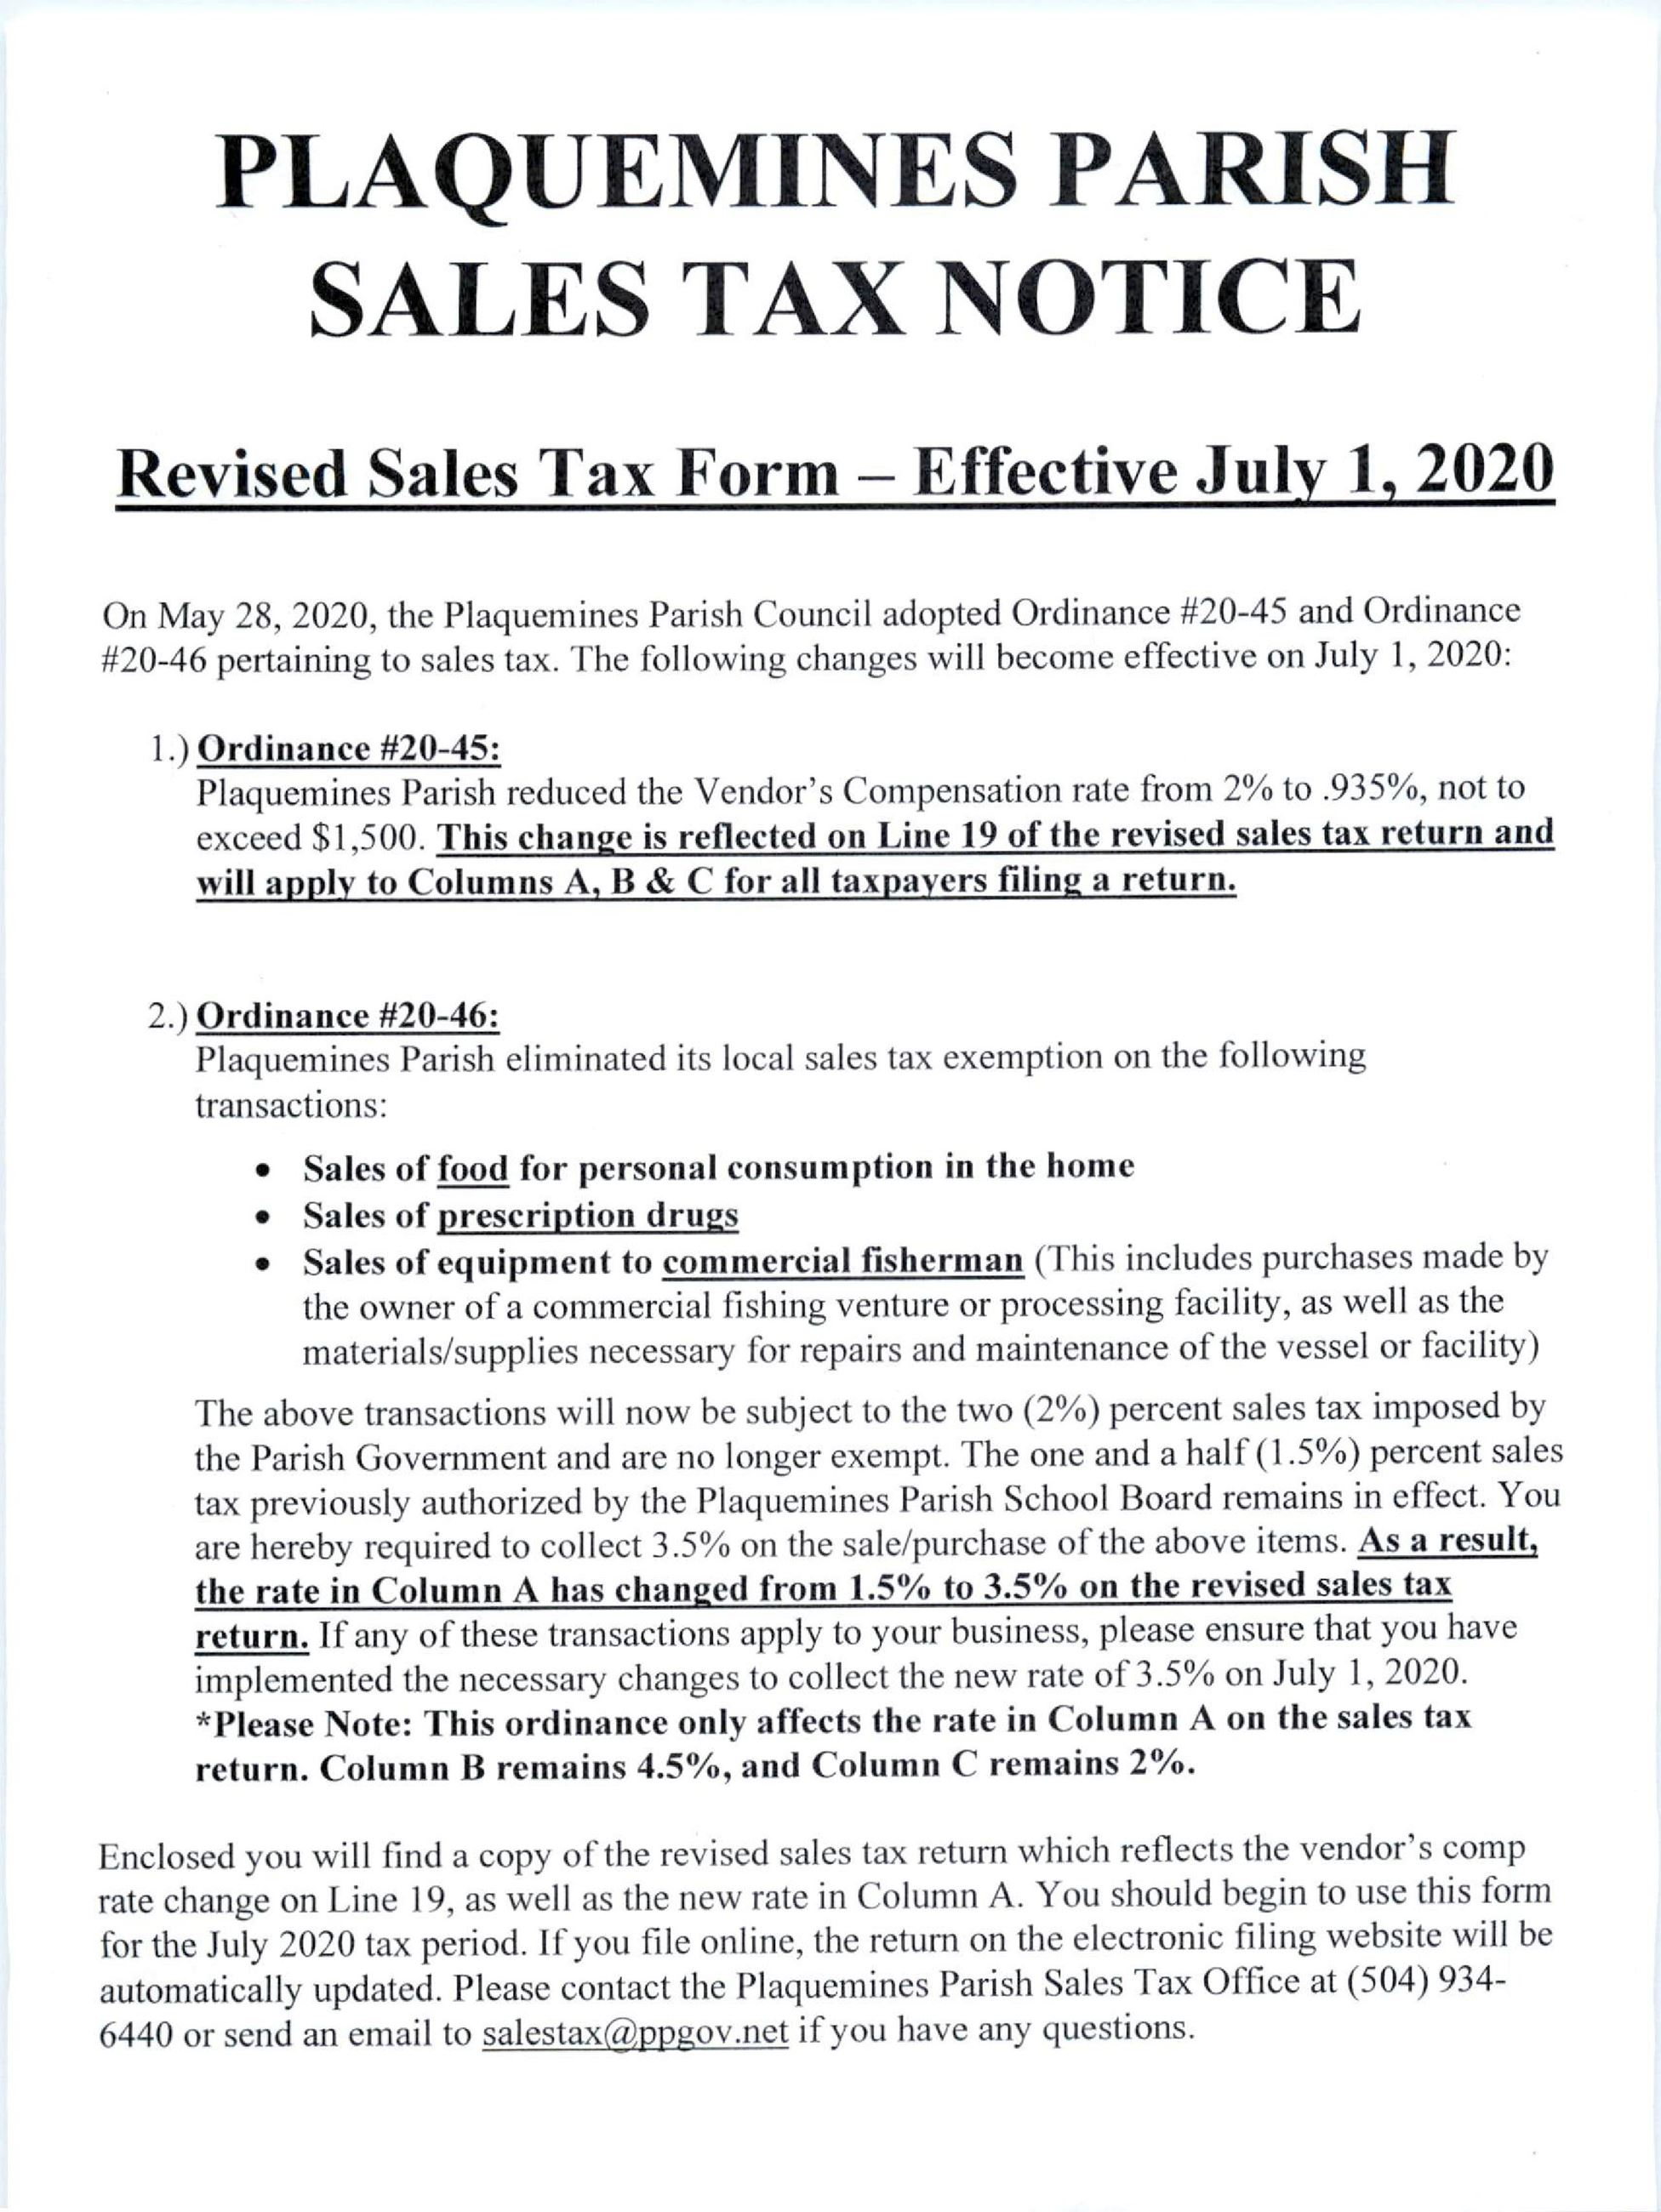 Sales Tax Notice